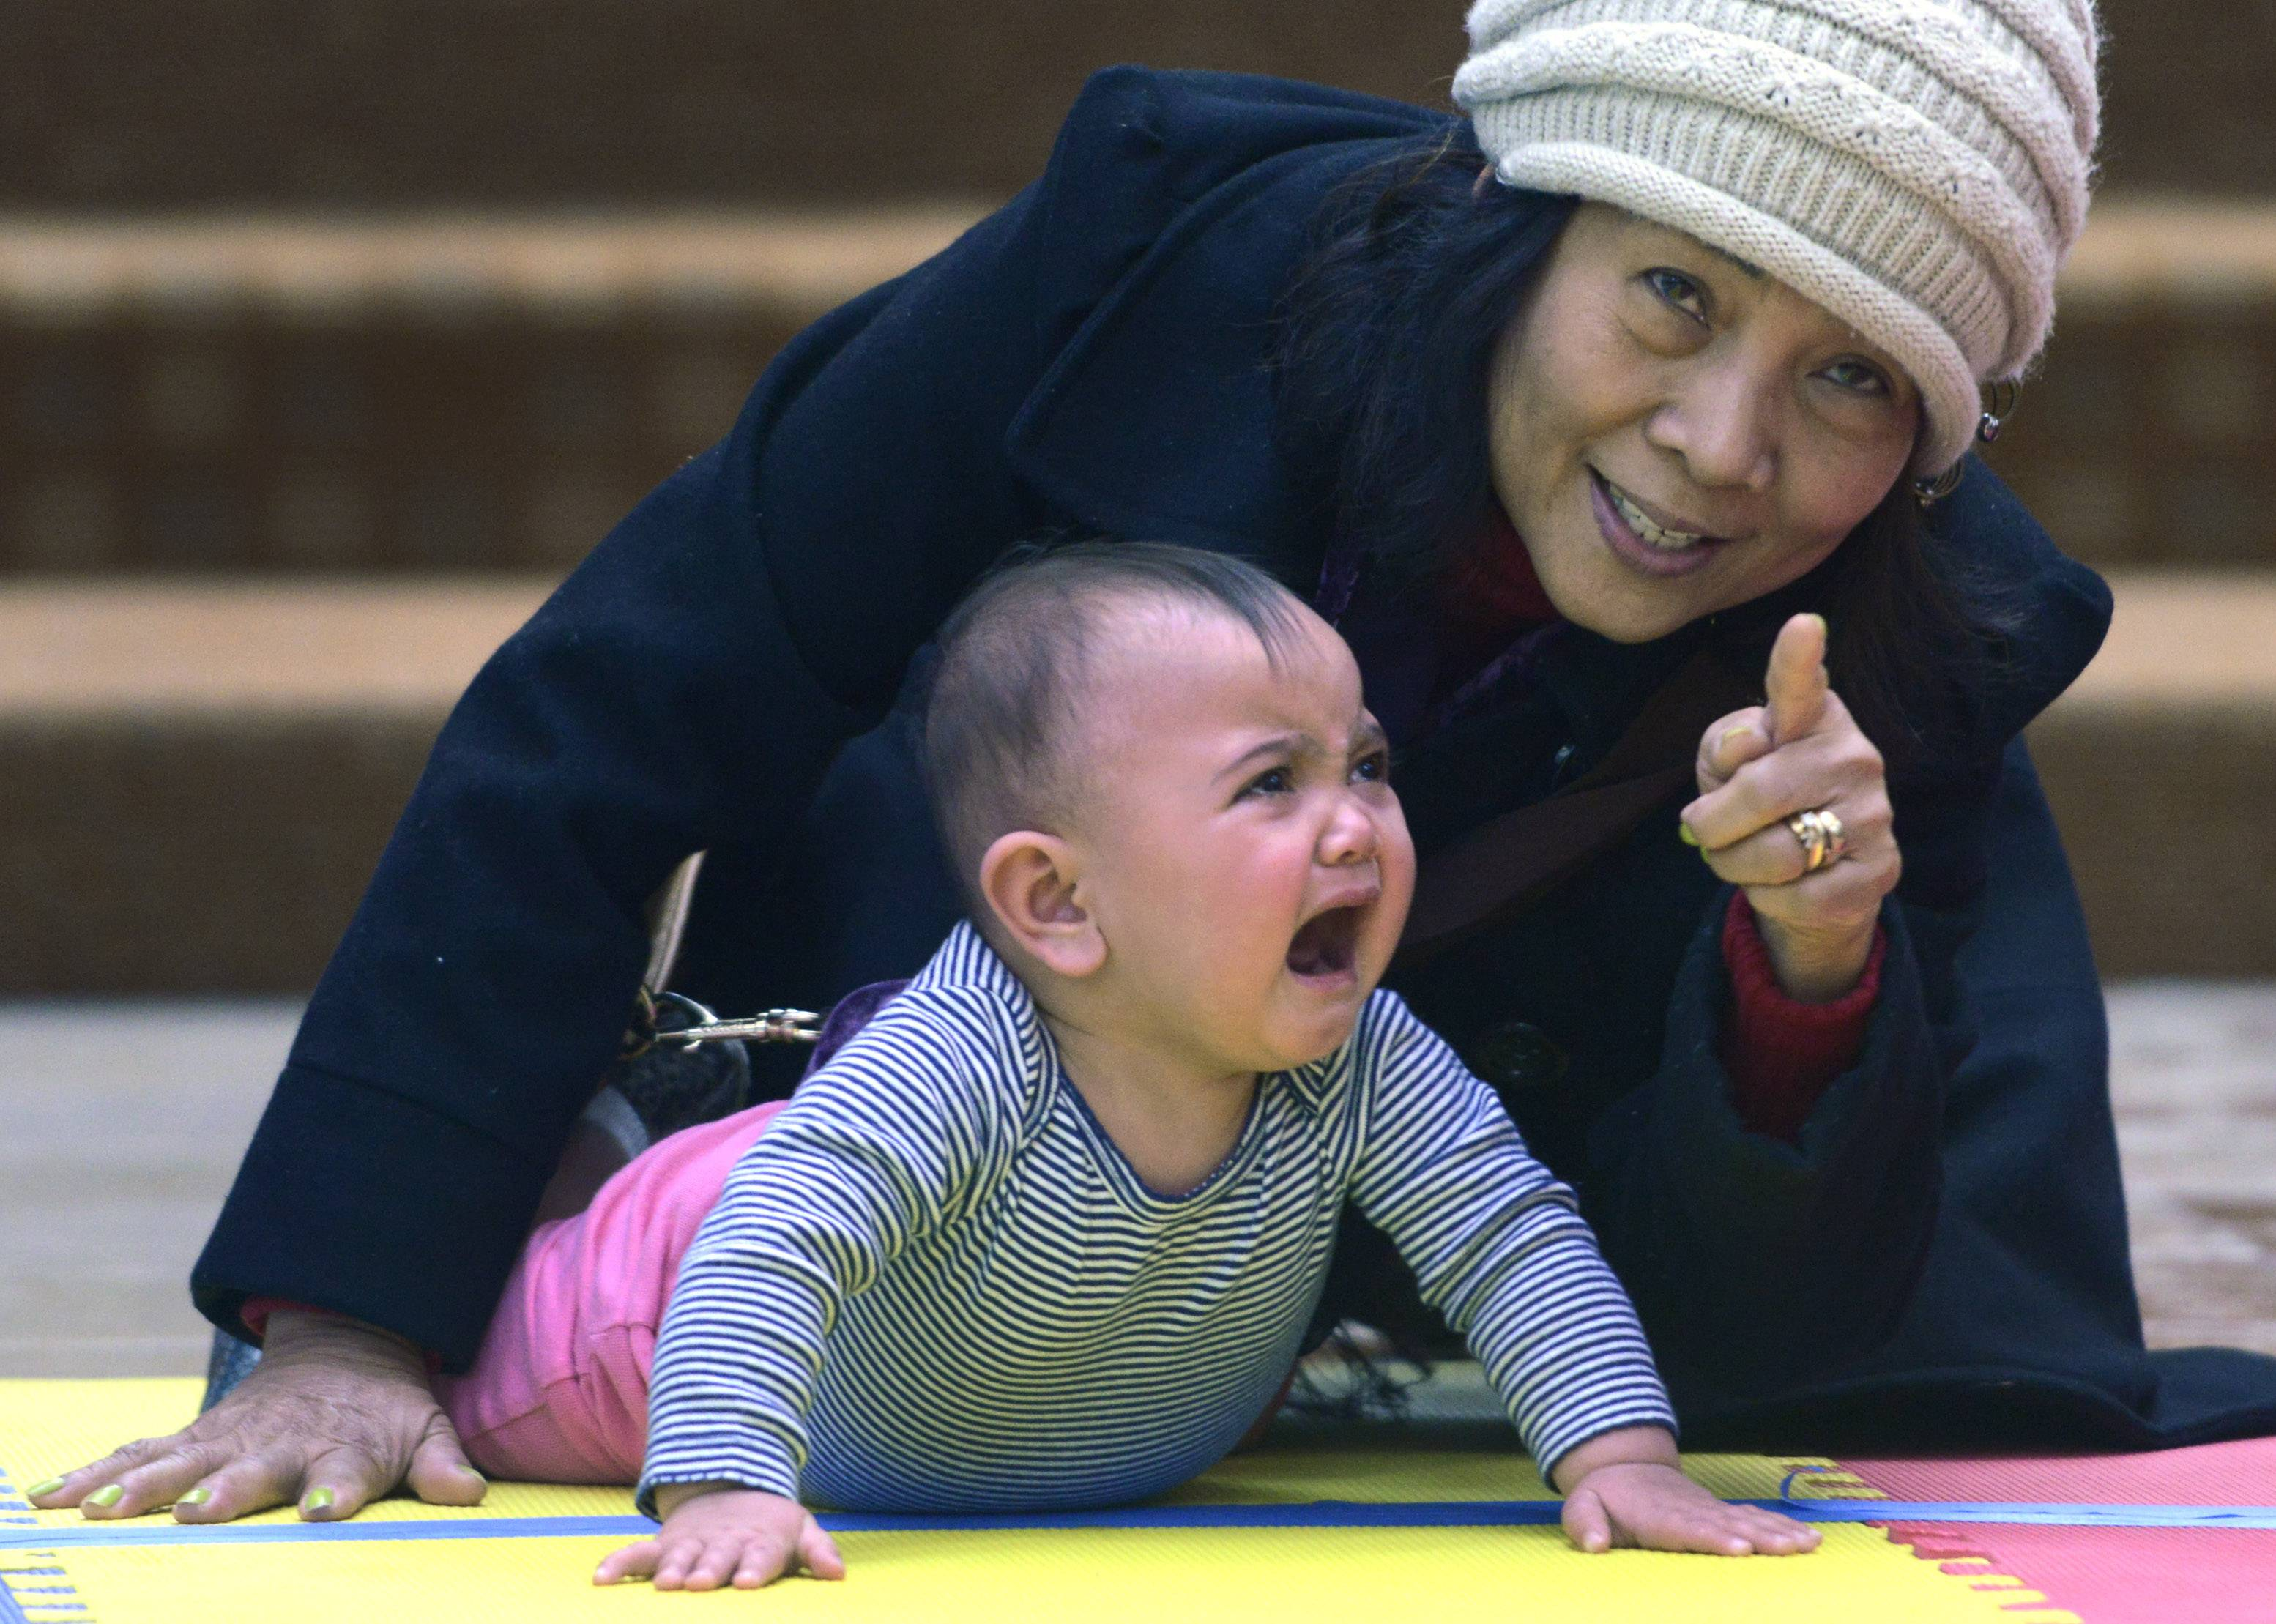 Jacqueline Ferrer, 10½ months, of Schaumburg, cries despite the encouragement of her grandmother, Nelly Ferrer of Des Plaines, during the Diaper Derby event Saturday at Woodfield Mall in Schaumburg. Jacqueline went on to win the heat.